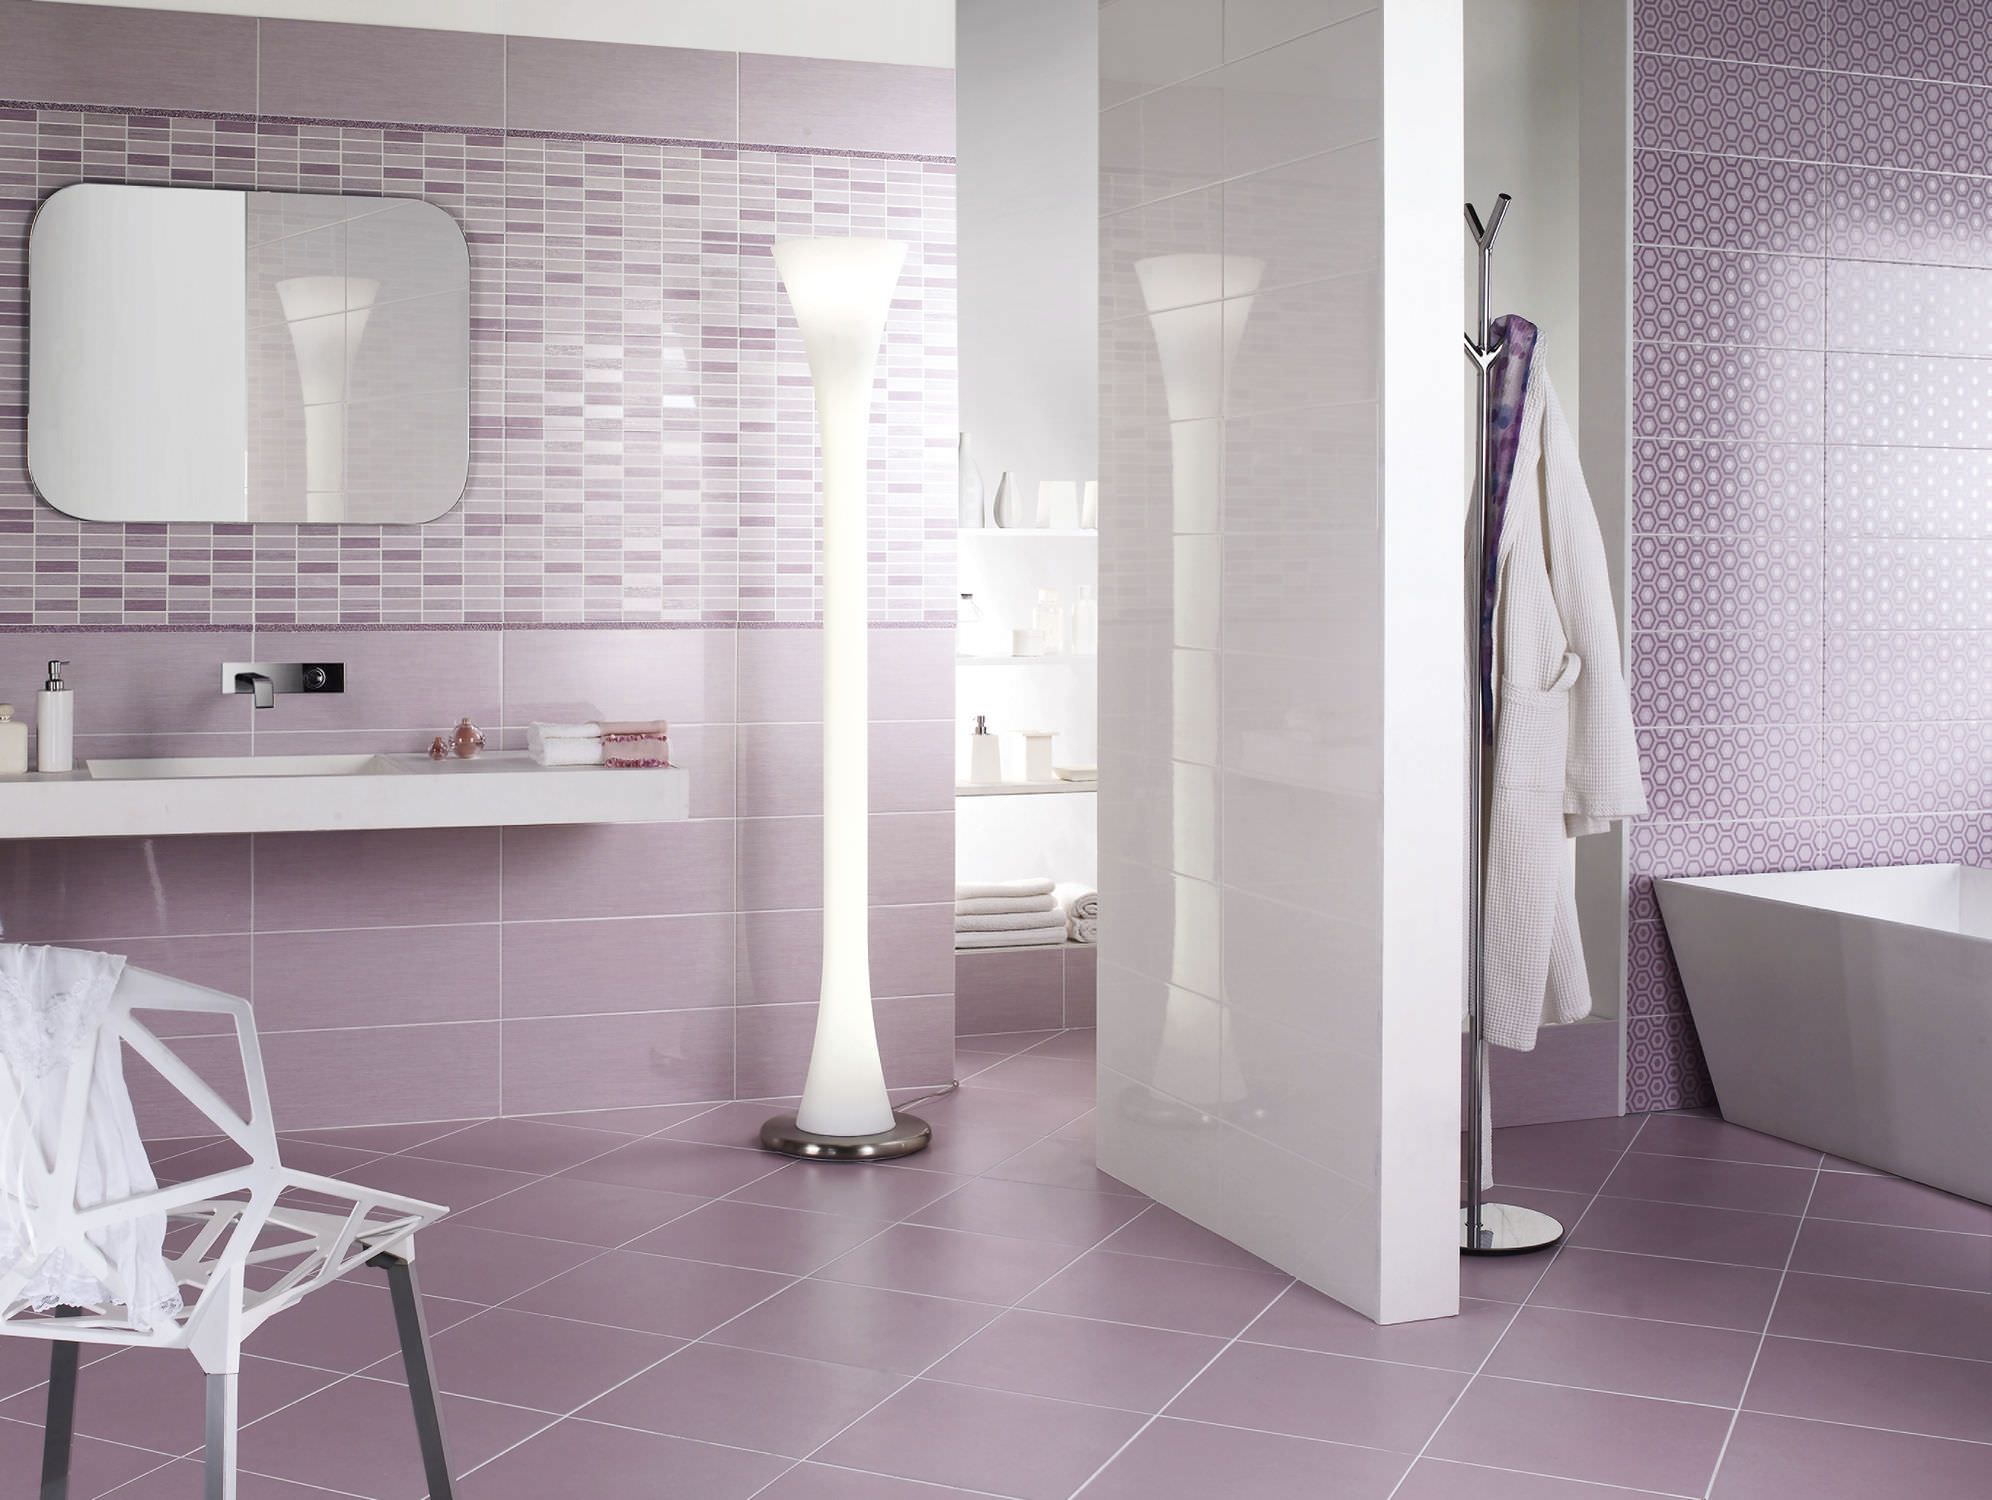 p-bathroom-ceramic-tile-home-depot-bathroom-ceramic-tile-floor-ideas-bathroom-ceramic-tile-flooring-porcelain-vs-ceramic-tile-bathroom-flooring-bathroom-ceramic-tile-floor-designs-textured-cerami